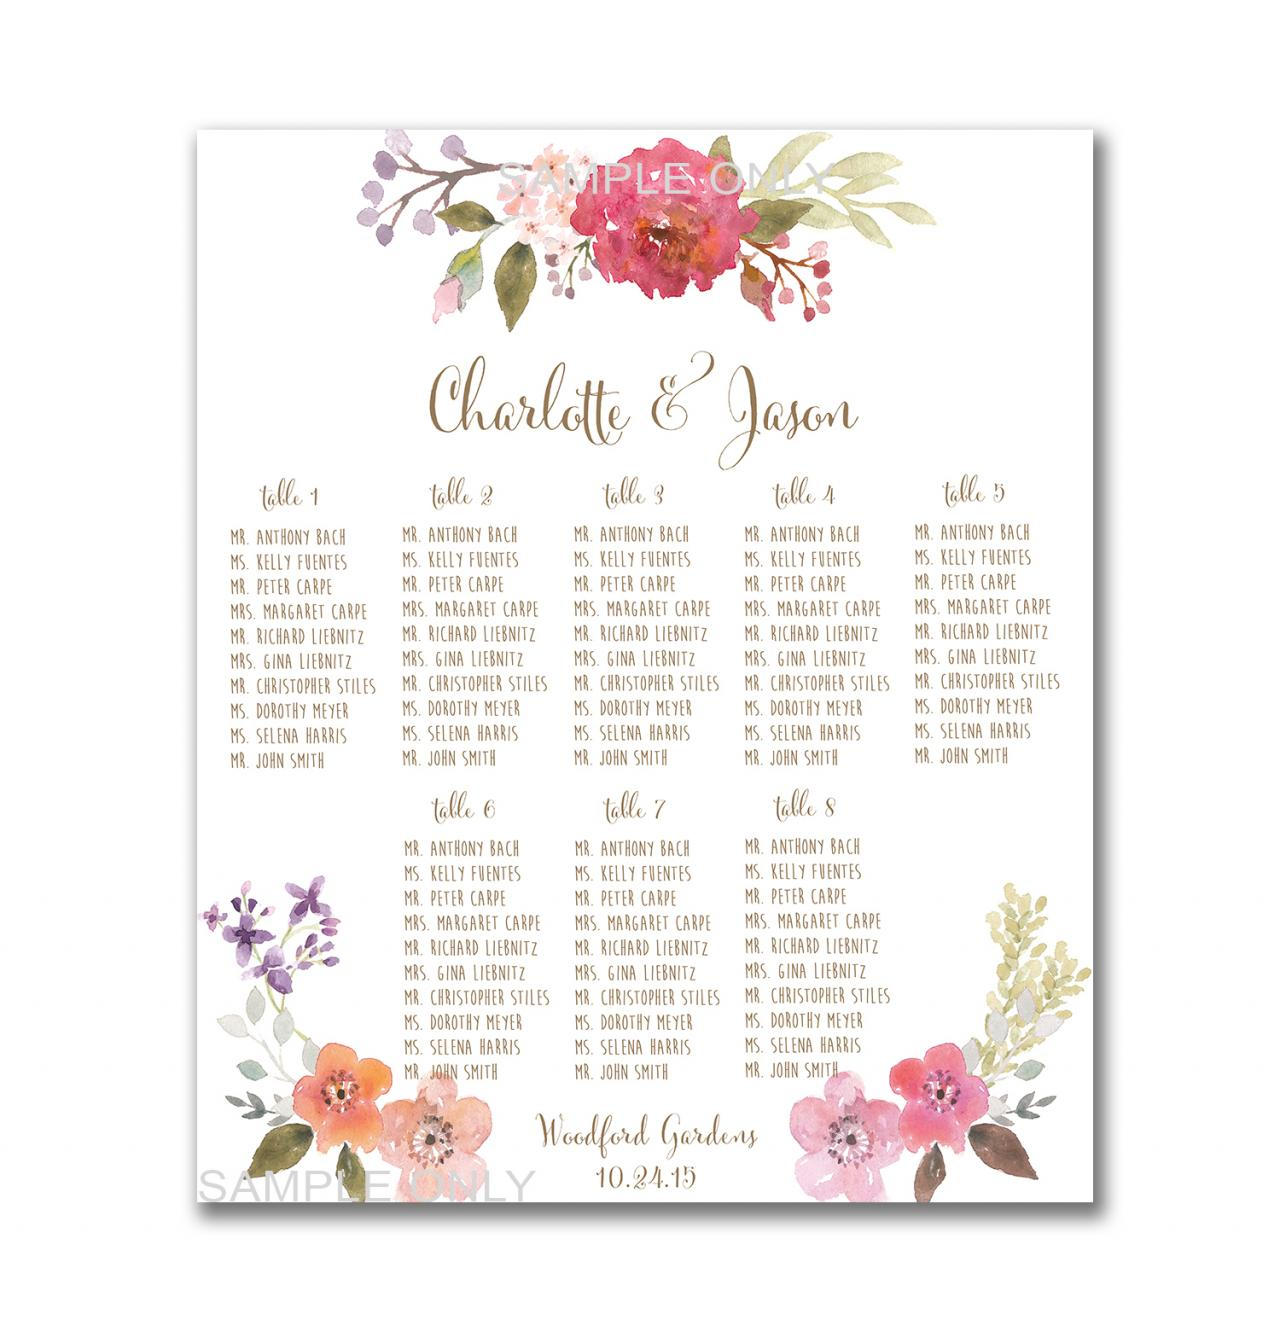 printable wedding seating chart radiovkmtk - Free Printable Wedding Seating Chart Template